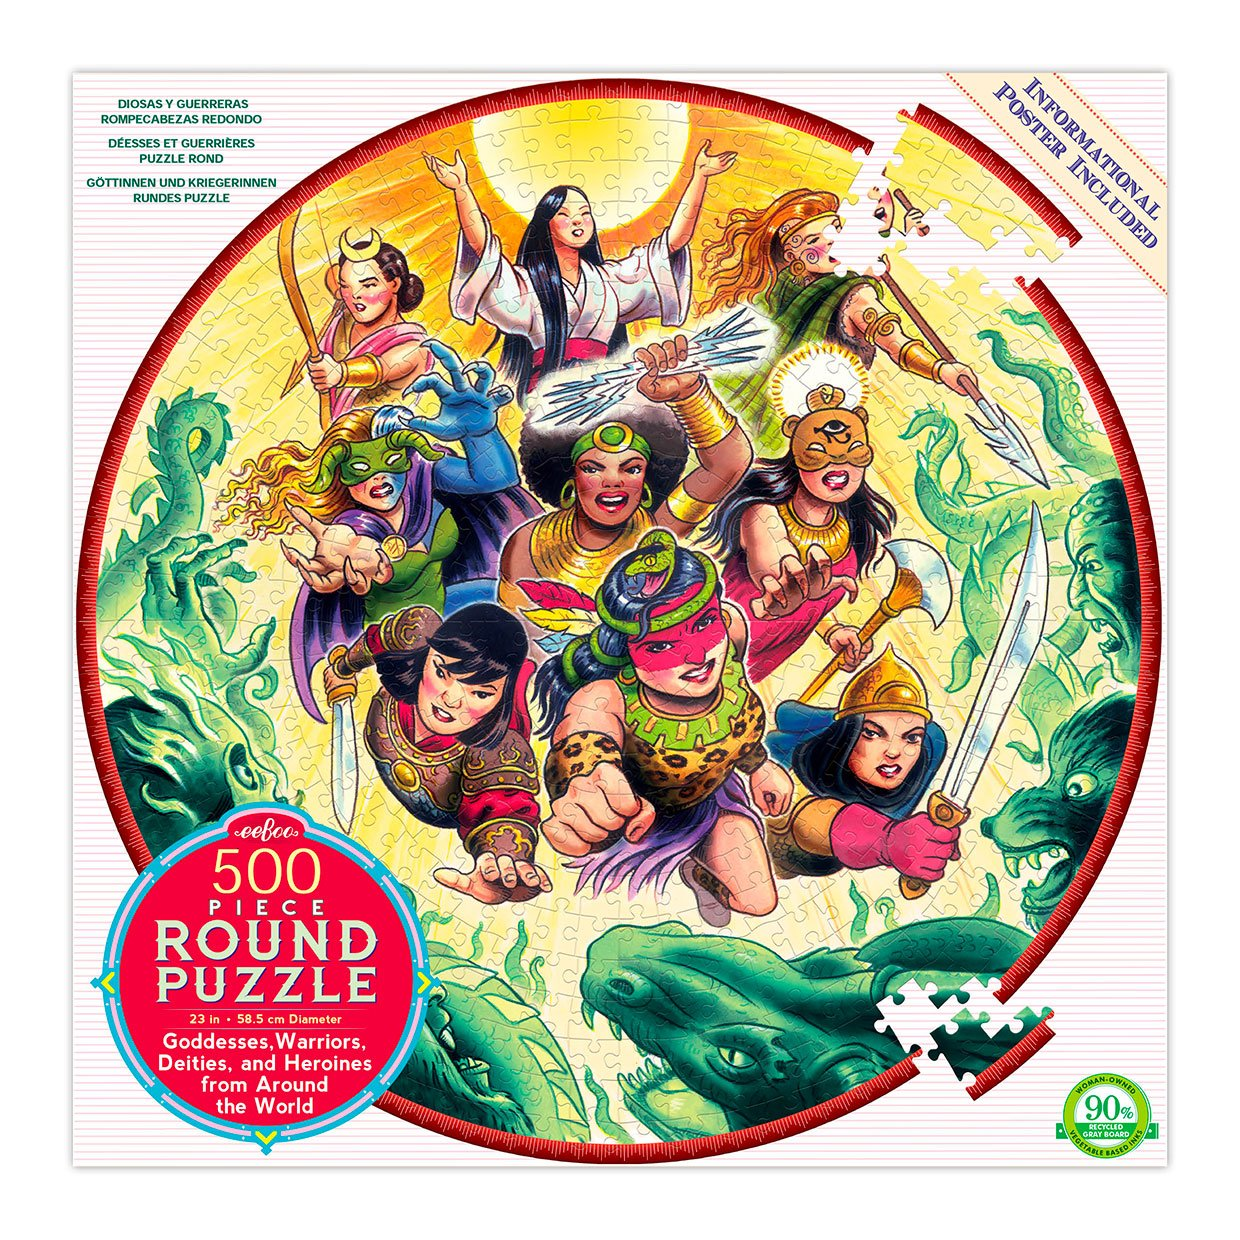 Goddess and Warriors Jigsaw Puzzle